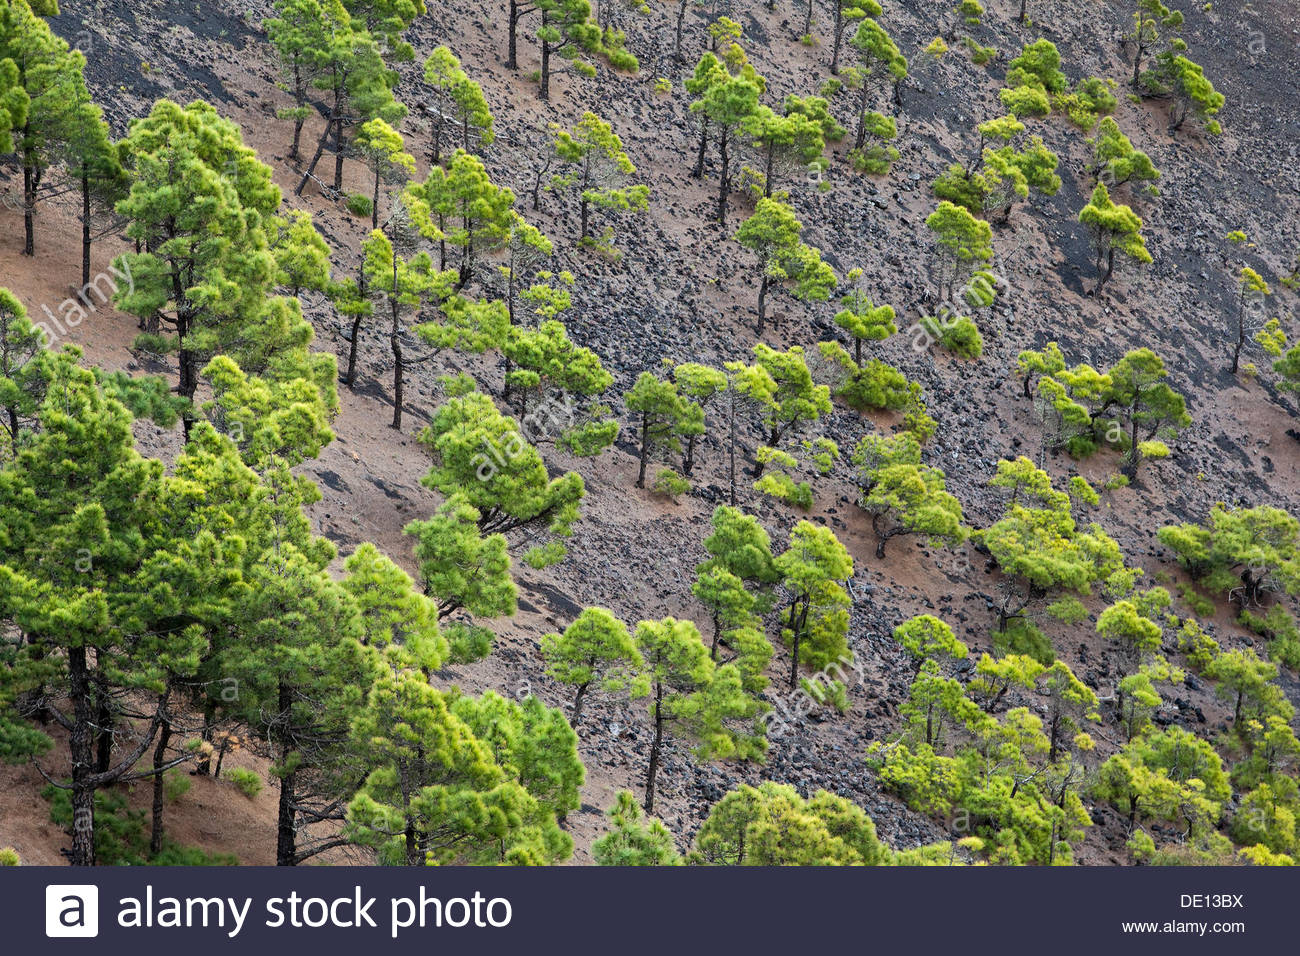 Conifers in the Teneguía volcanic crater, La Palma, Canary Islands, Spain - Stock Image